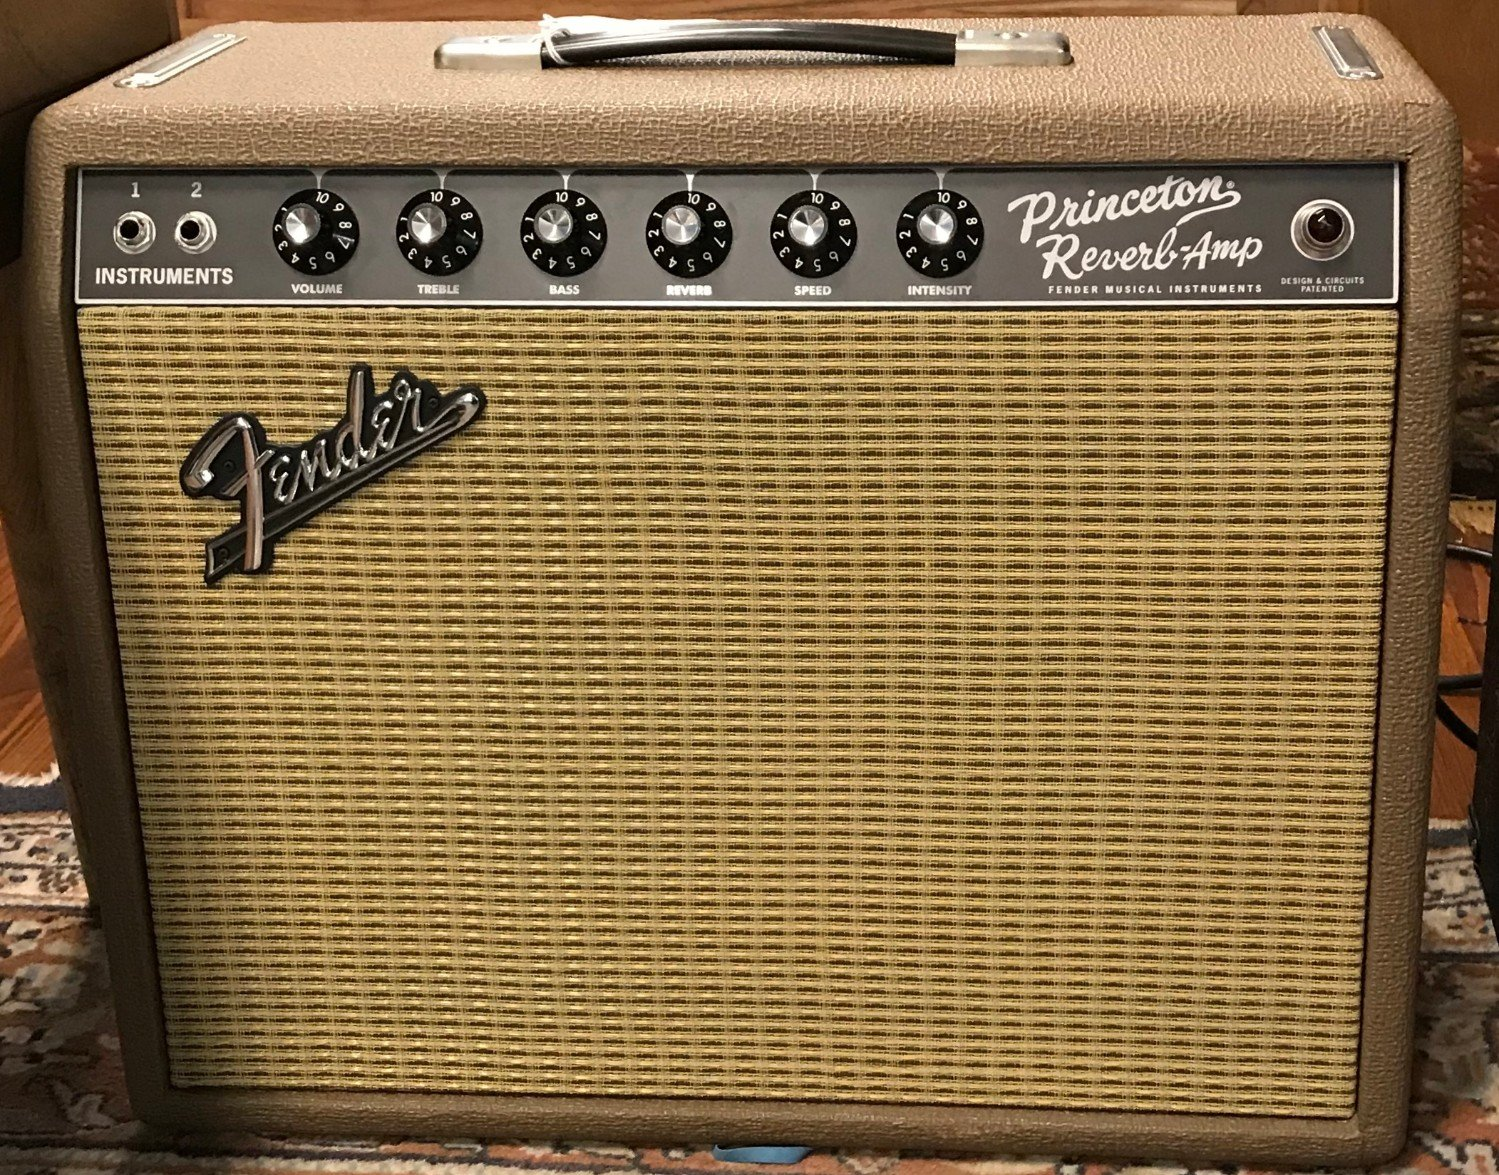 Used Fender Princeton recording amp limited edition